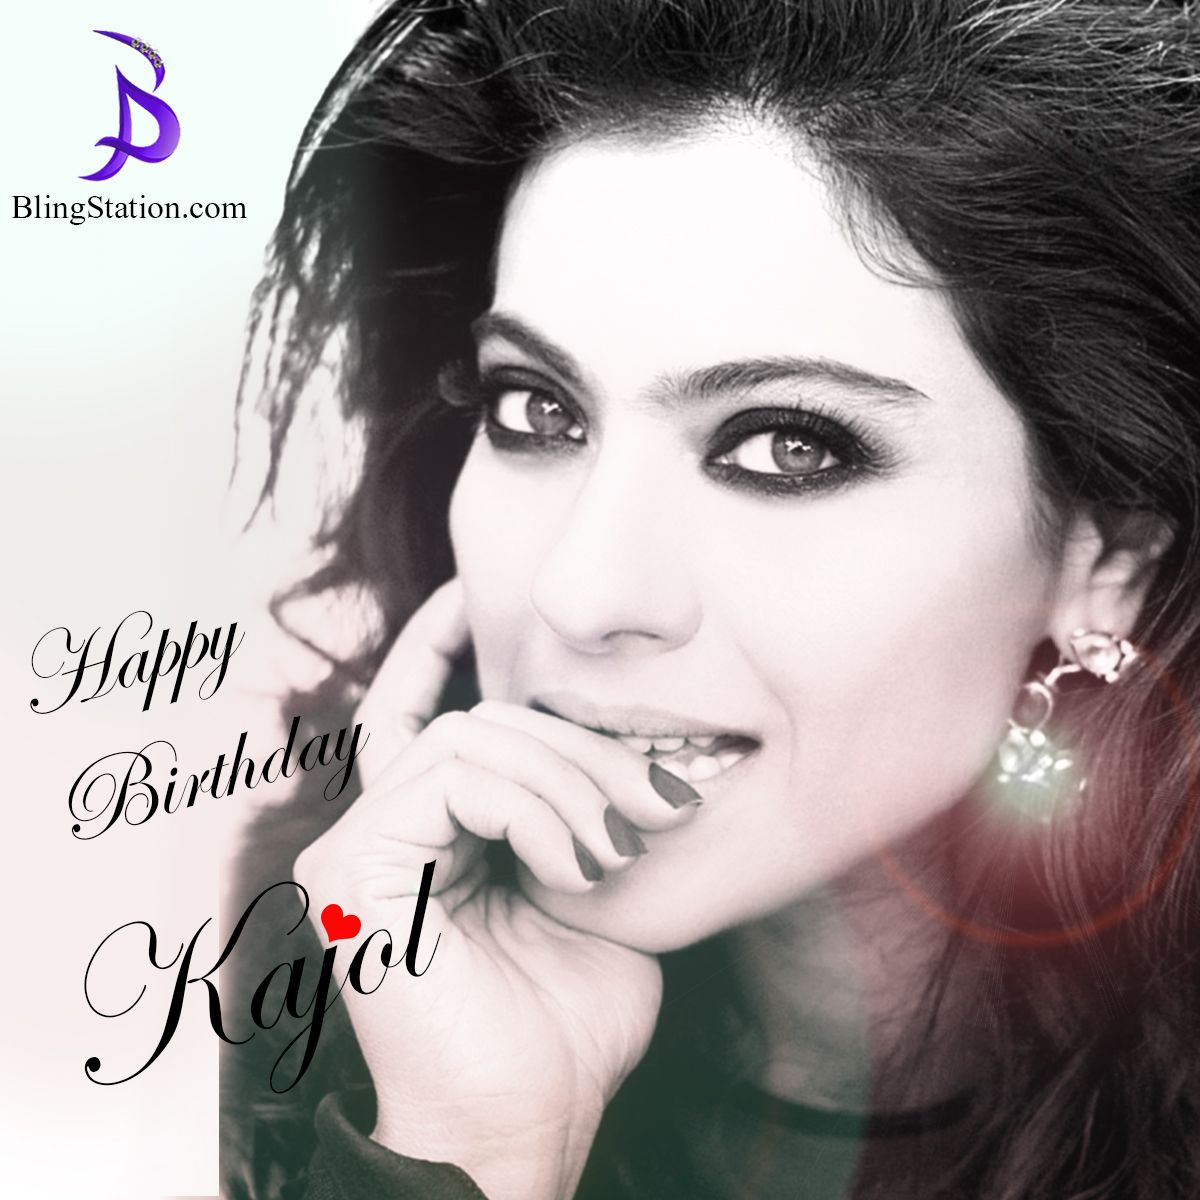 Wishing the stunning ‪#‎Kajol‬ a very Happy Birthday! Your beauty is beyond words! ‪#‎HappyBirthdayKajol‬ ‪#‎BlingStation‬ ‪#‎fashion‬ ‪#‎jewellery‬